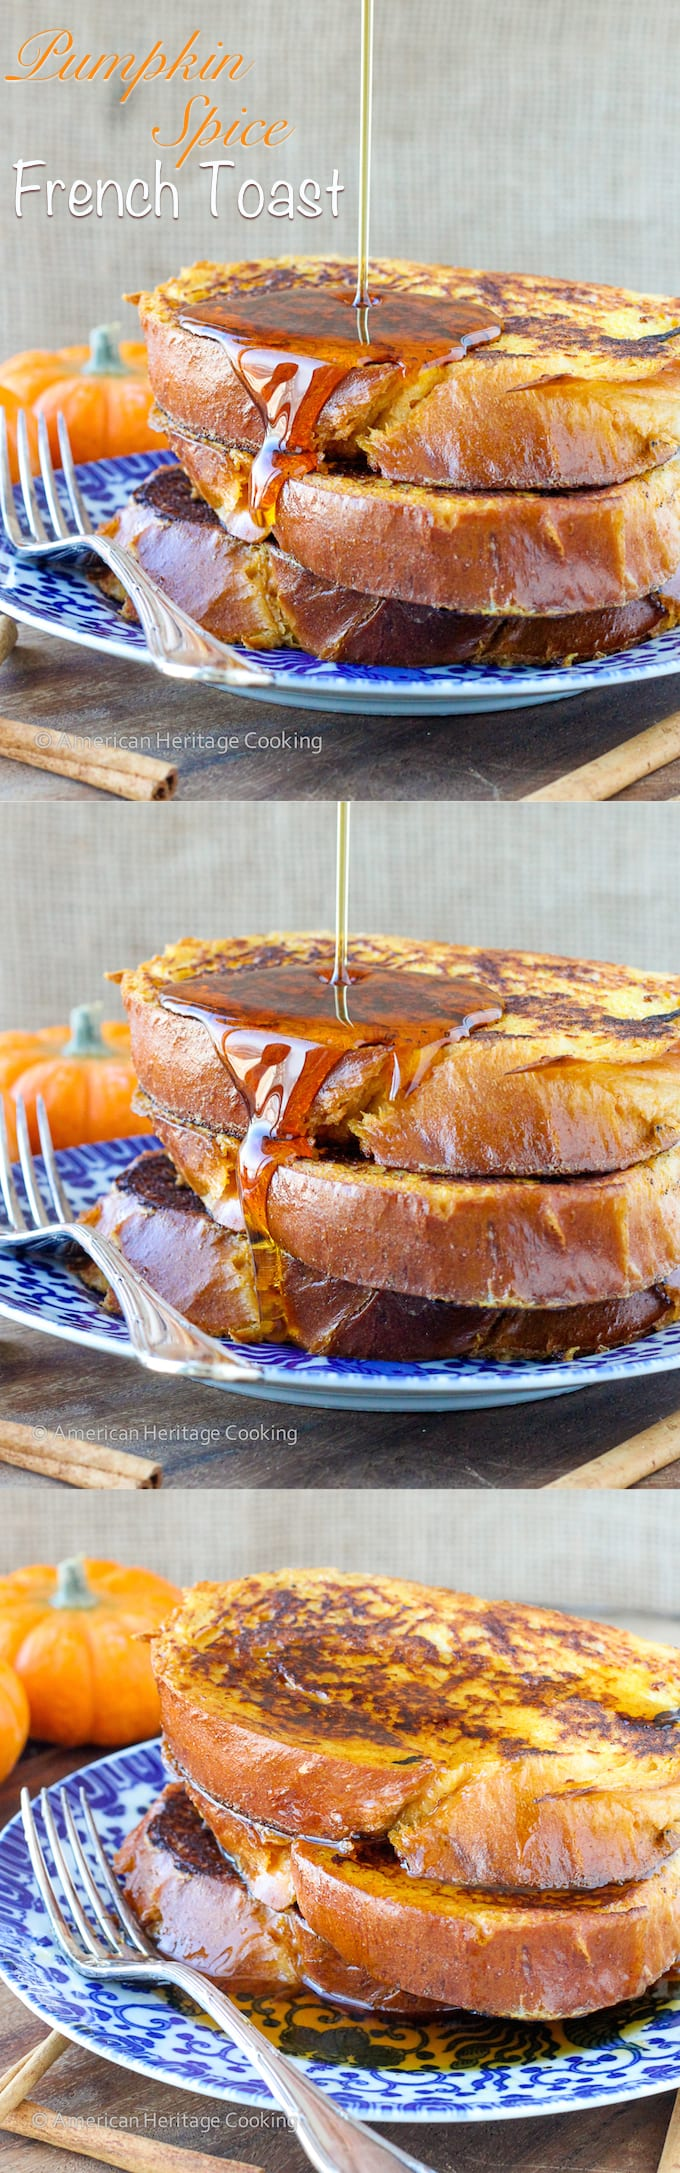 Pumpkin Spice French Toast | An easy Holiday Breakfast for Two!